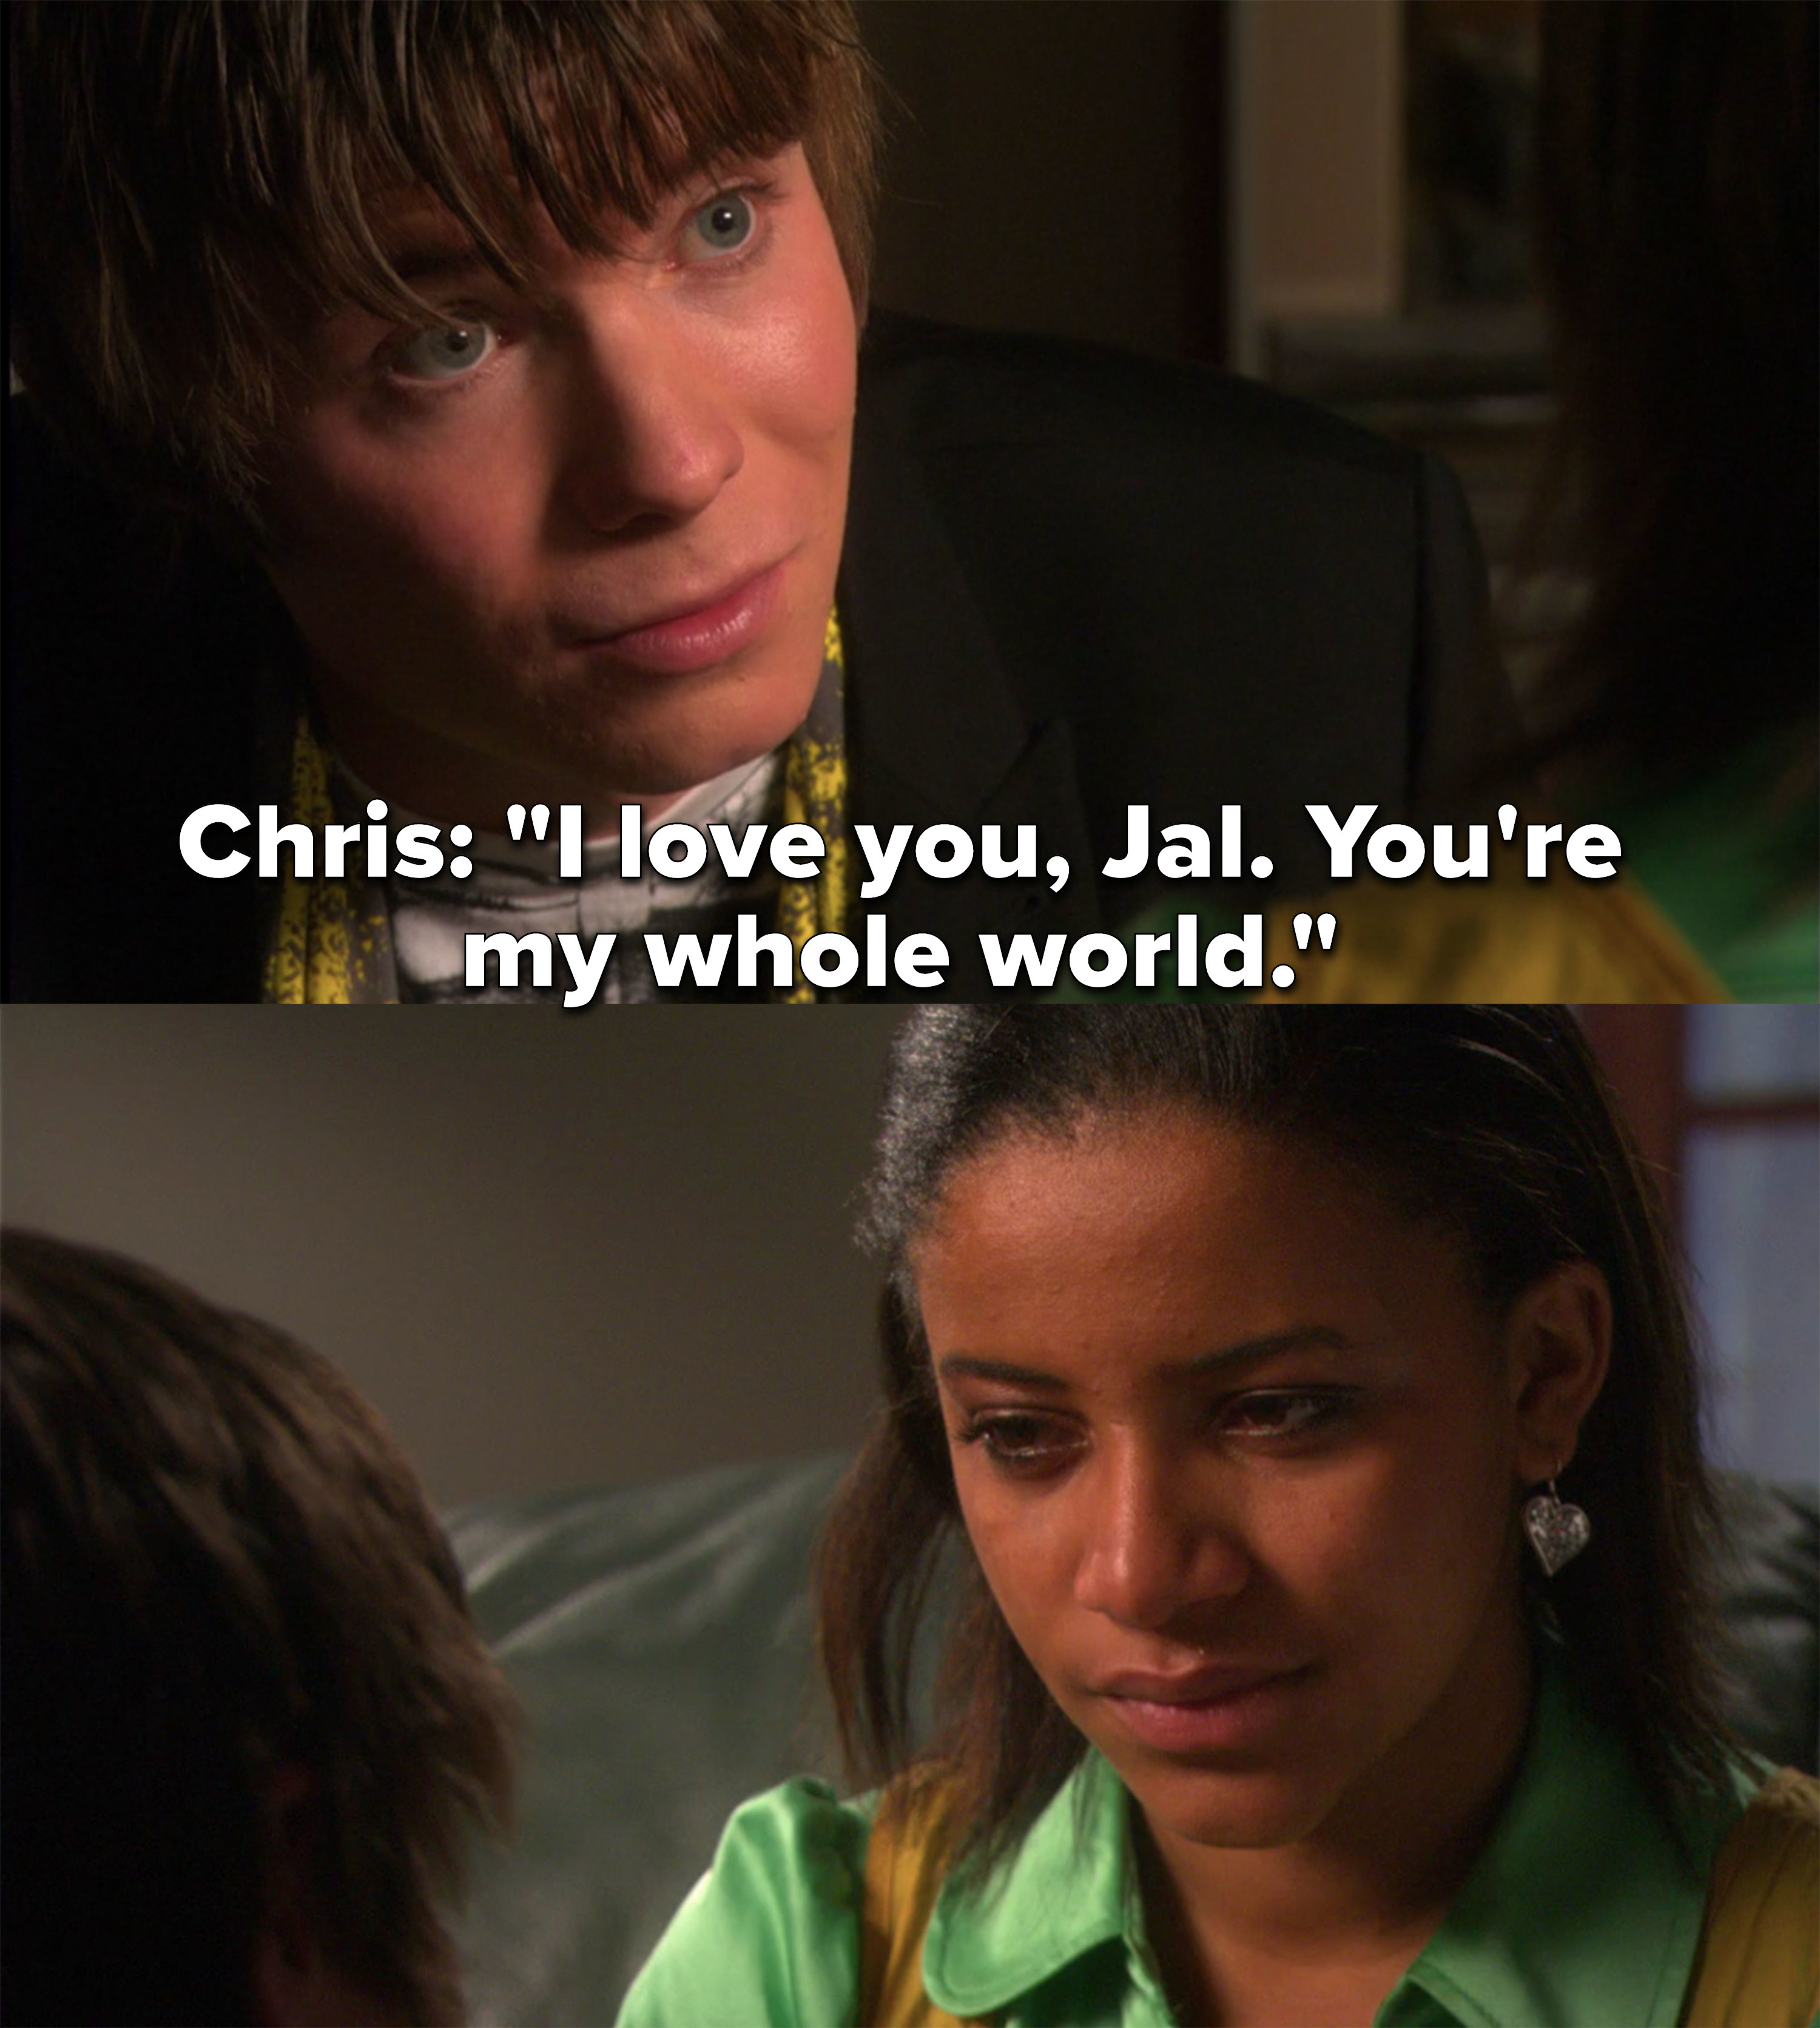 """Chris: """"I love you Jal, you're my whole world"""""""